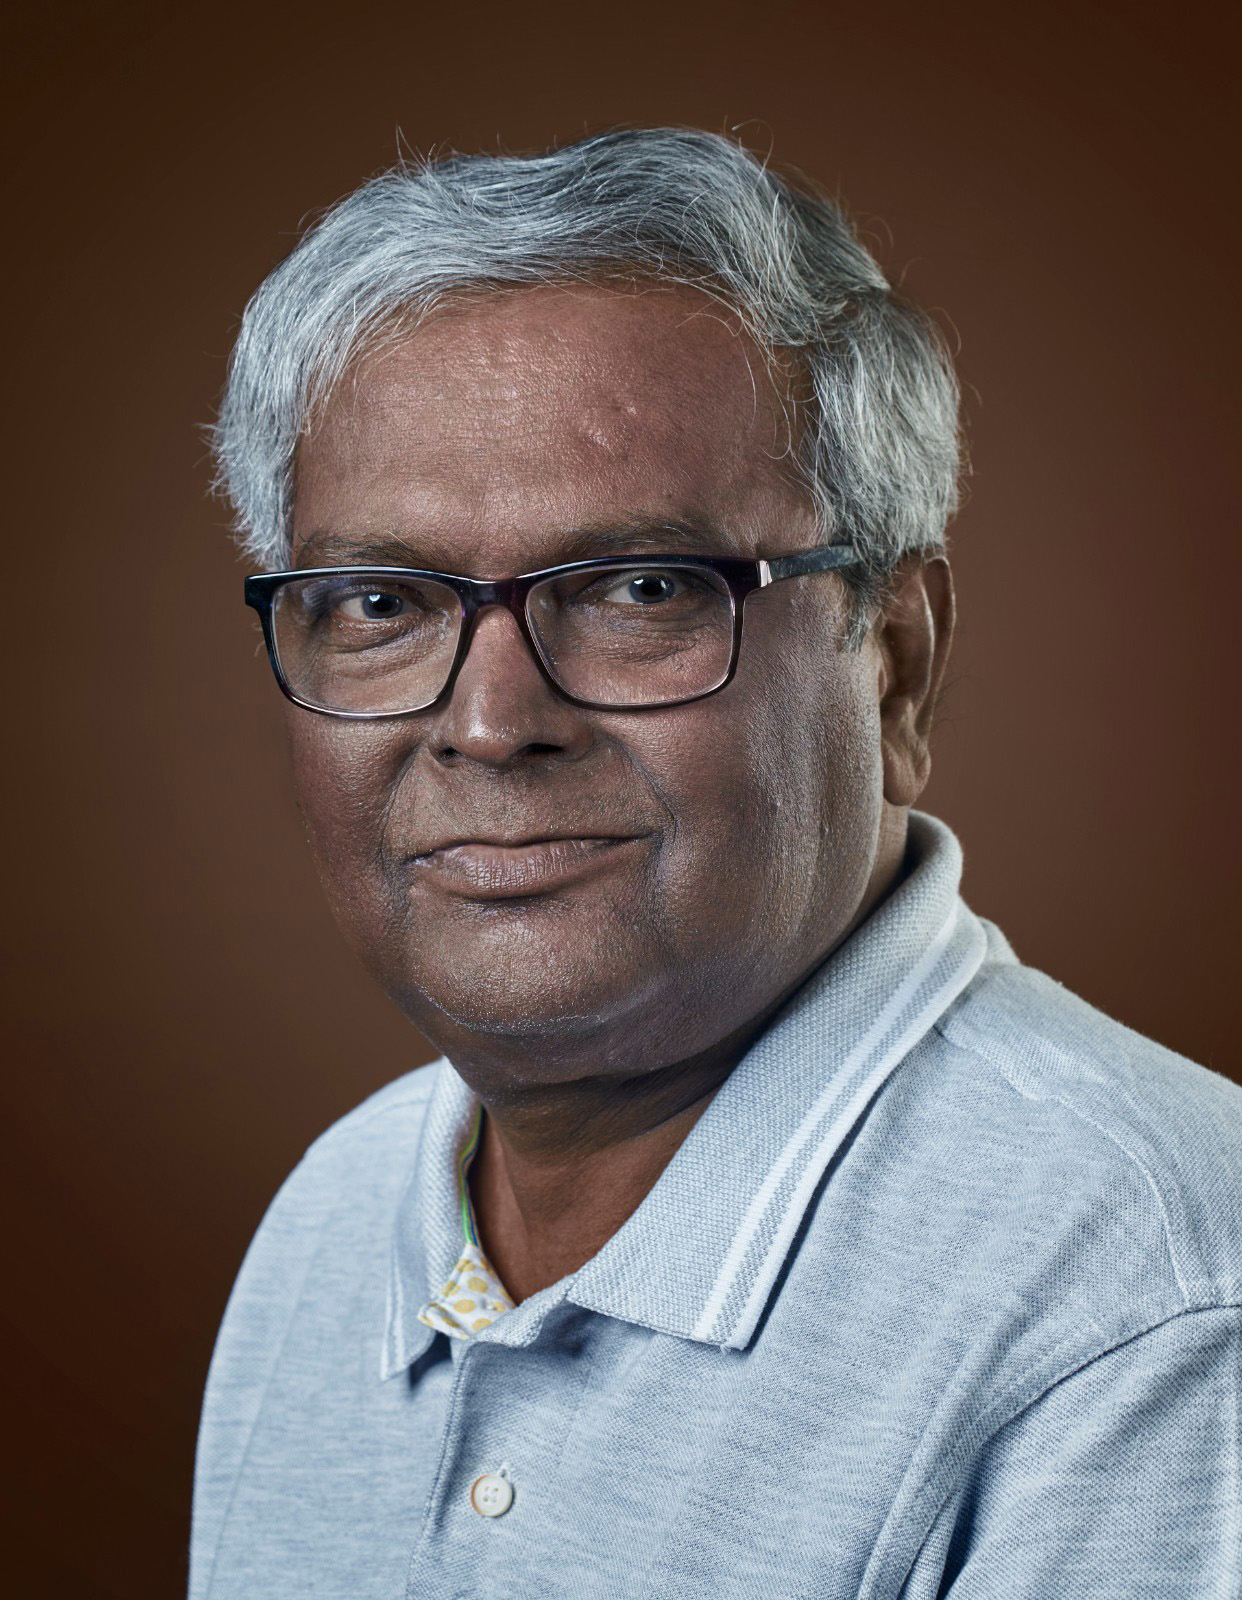 Mr. Shyamal Kumar Roy profile and gallery at HONORARY Distinction Holders Page